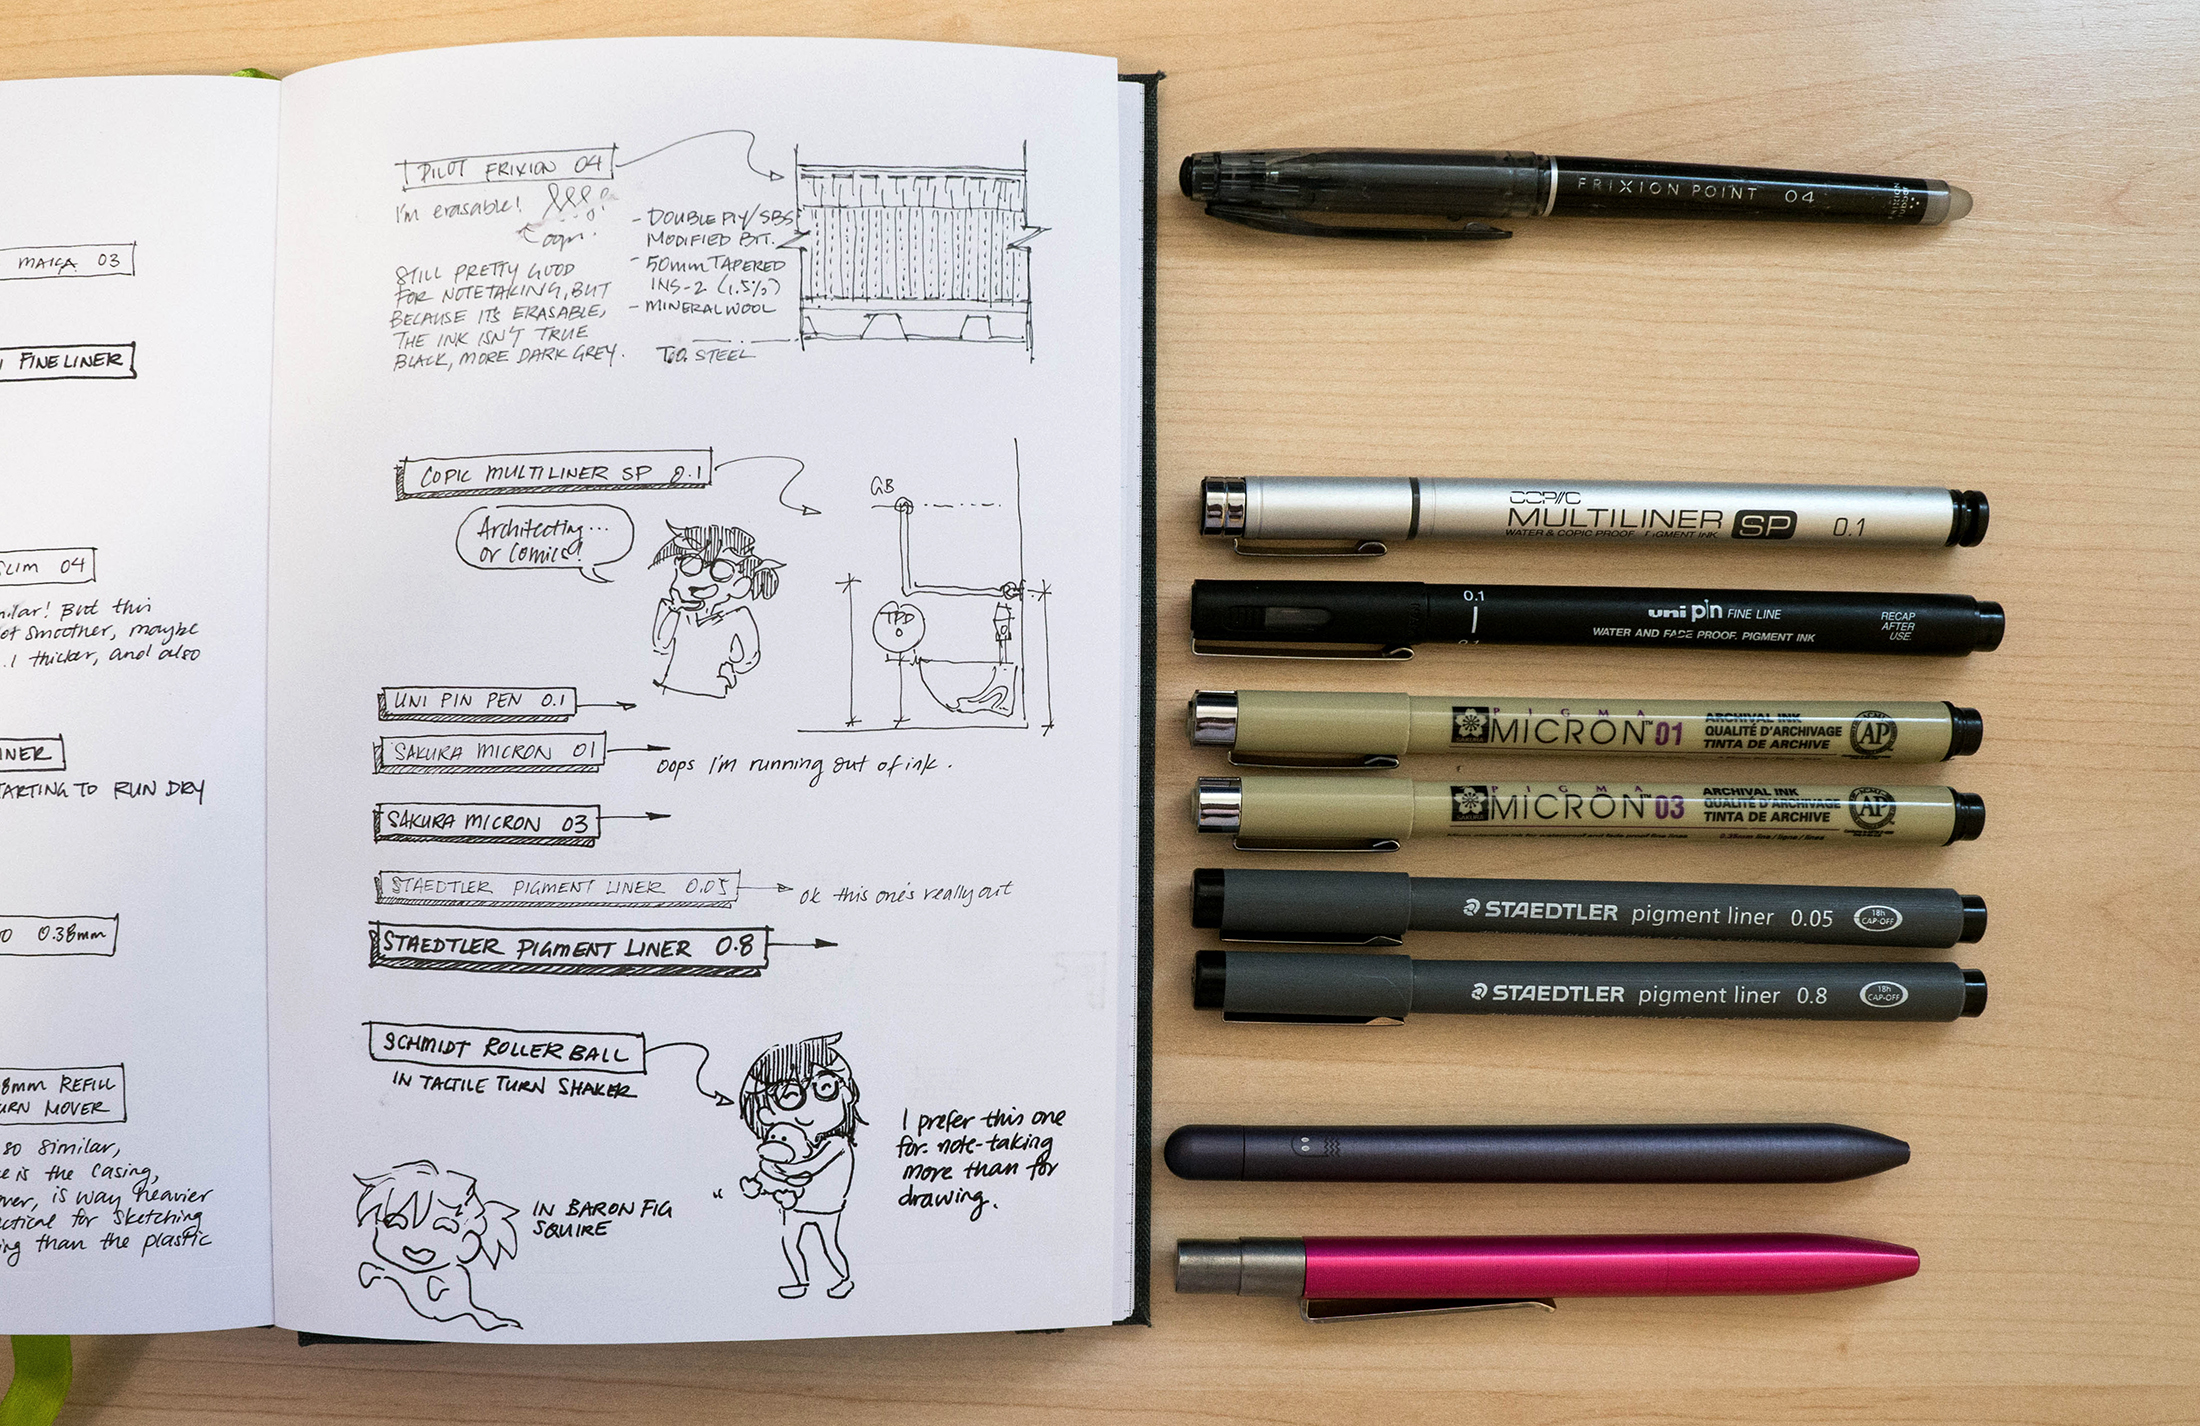 Abe Architects Black Pen Express Weirdoforest Pens Each Includes 1 Ball Point And Fountain As The Diagram Set Copic Multiliner Sp 01 Sakura Pigma Micron 03 2 Uni Pin Fine Staedtler Pigment Liner 005 08